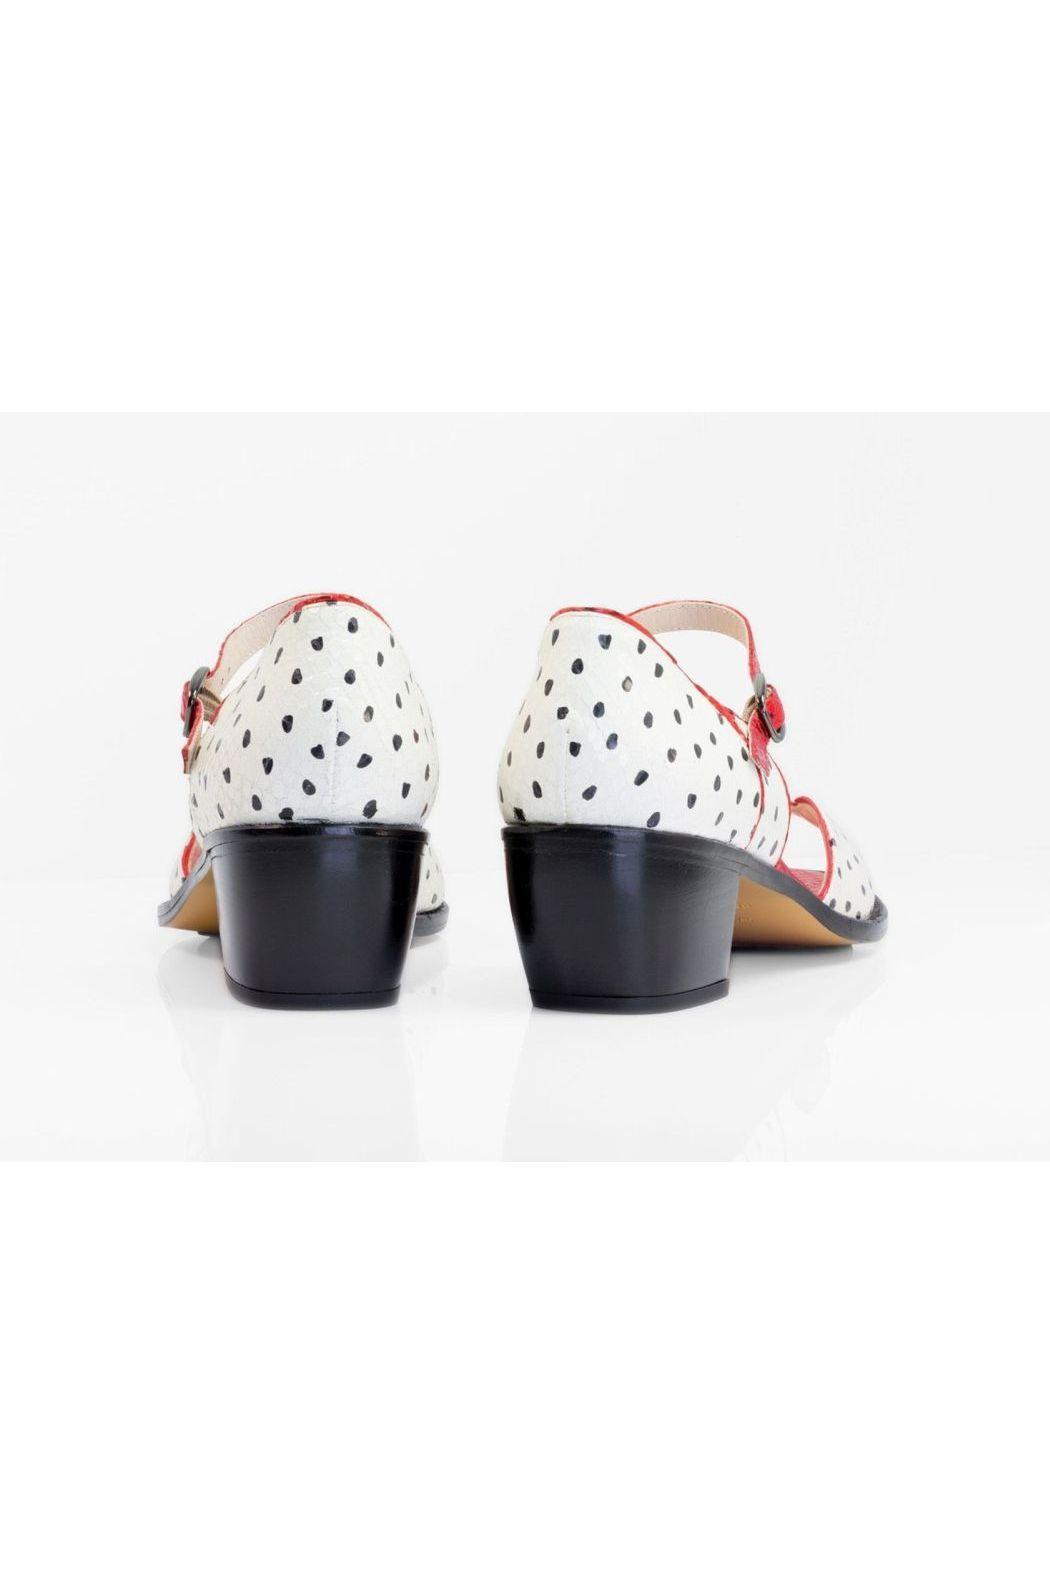 5yMedio Carlota White Black Red Sandals - Side Cropped Image